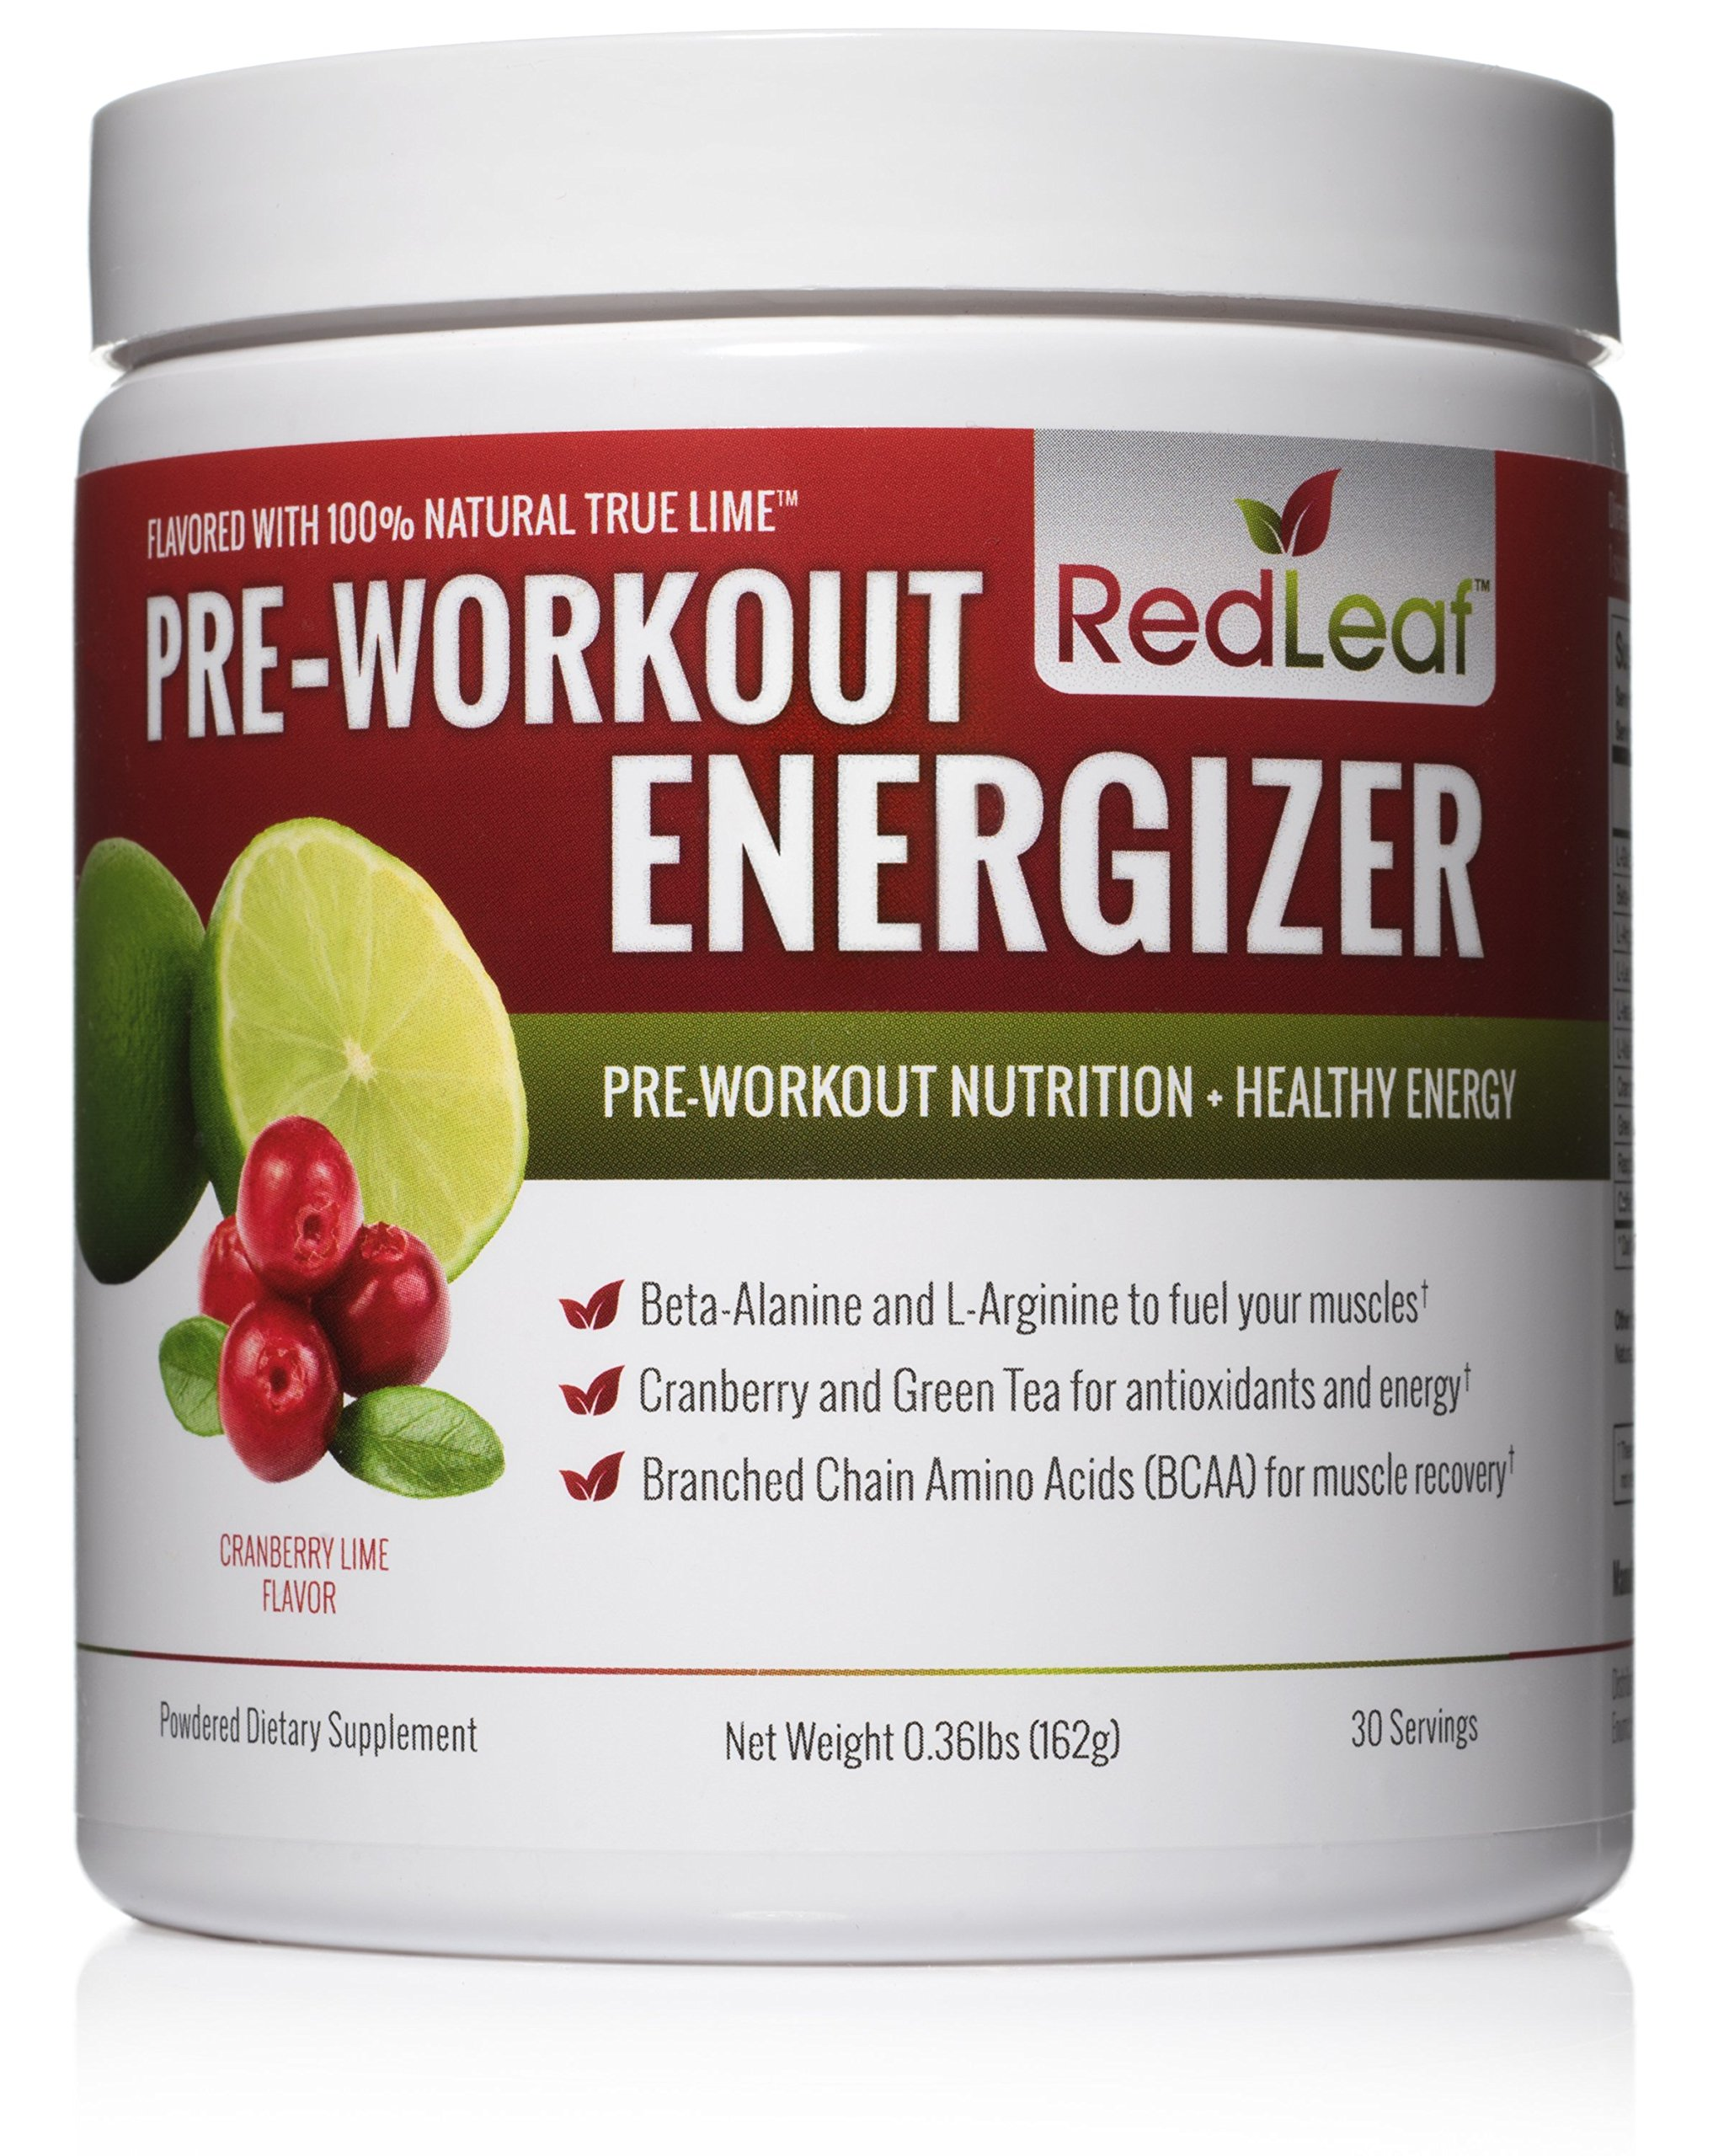 Red Leaf Pre-Workout Energizer Powder, Pre Workout for Women and Men, BCAA's, Beta-Alanine, Amino Acids, Green Tea, Natural Cranberry Lime Flavor - 30 Servings by Redleaf